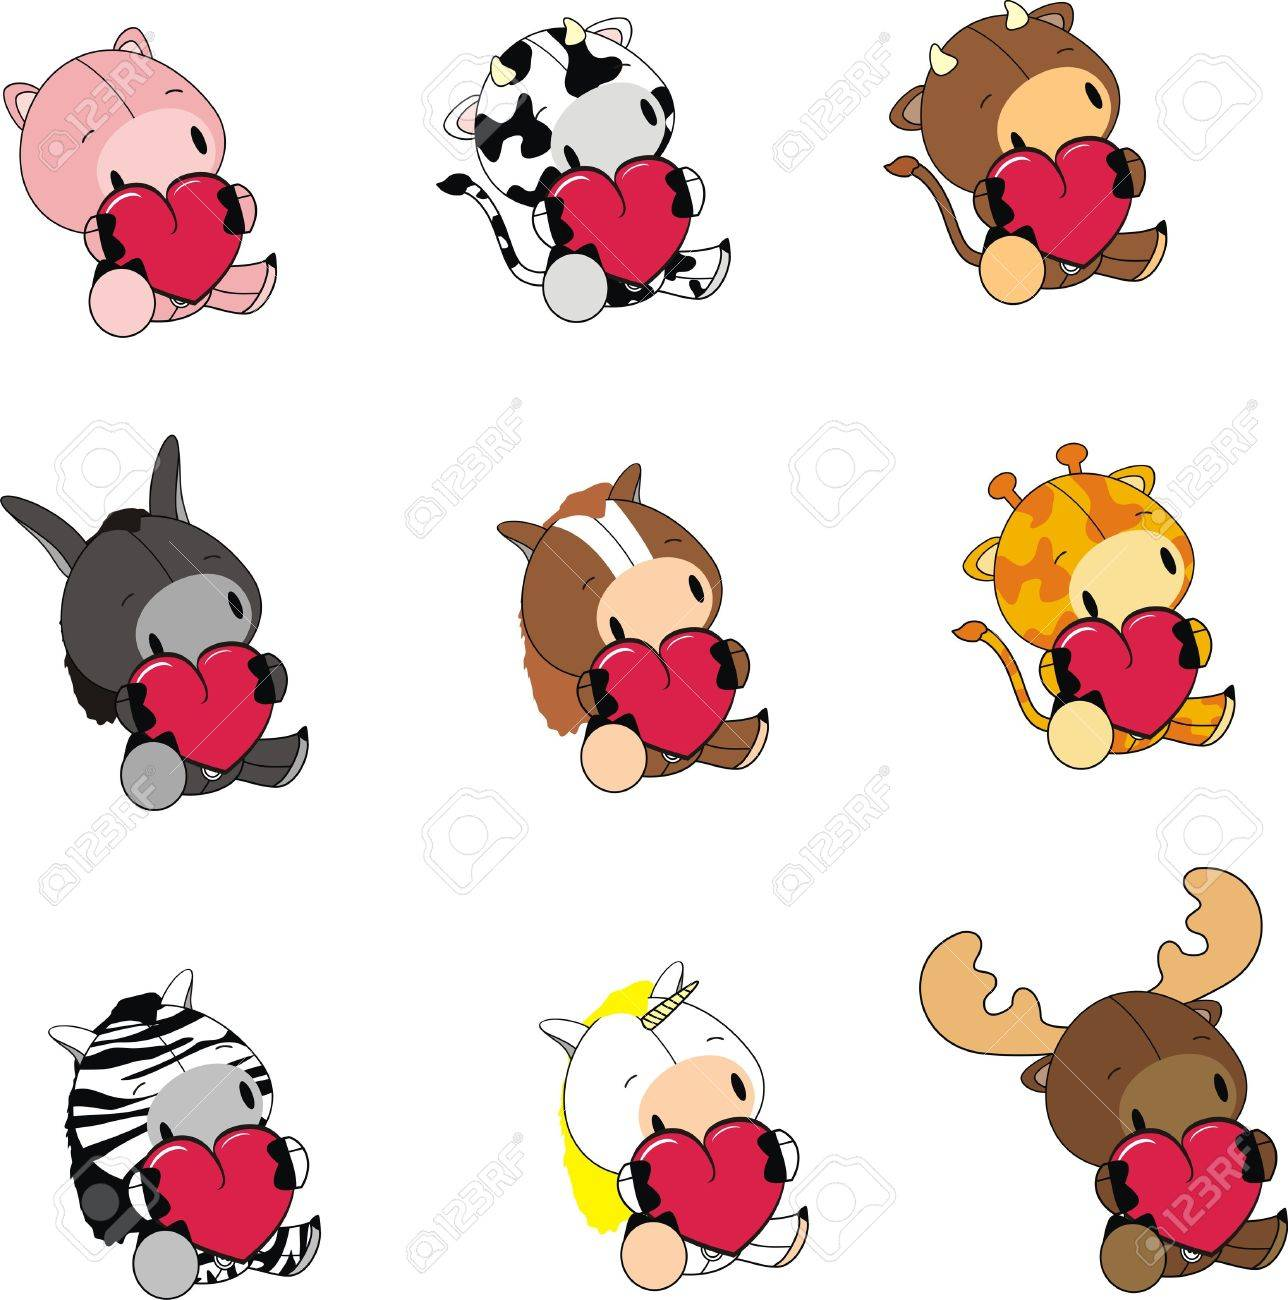 animals cartoon valentine set royalty free cliparts vectors and